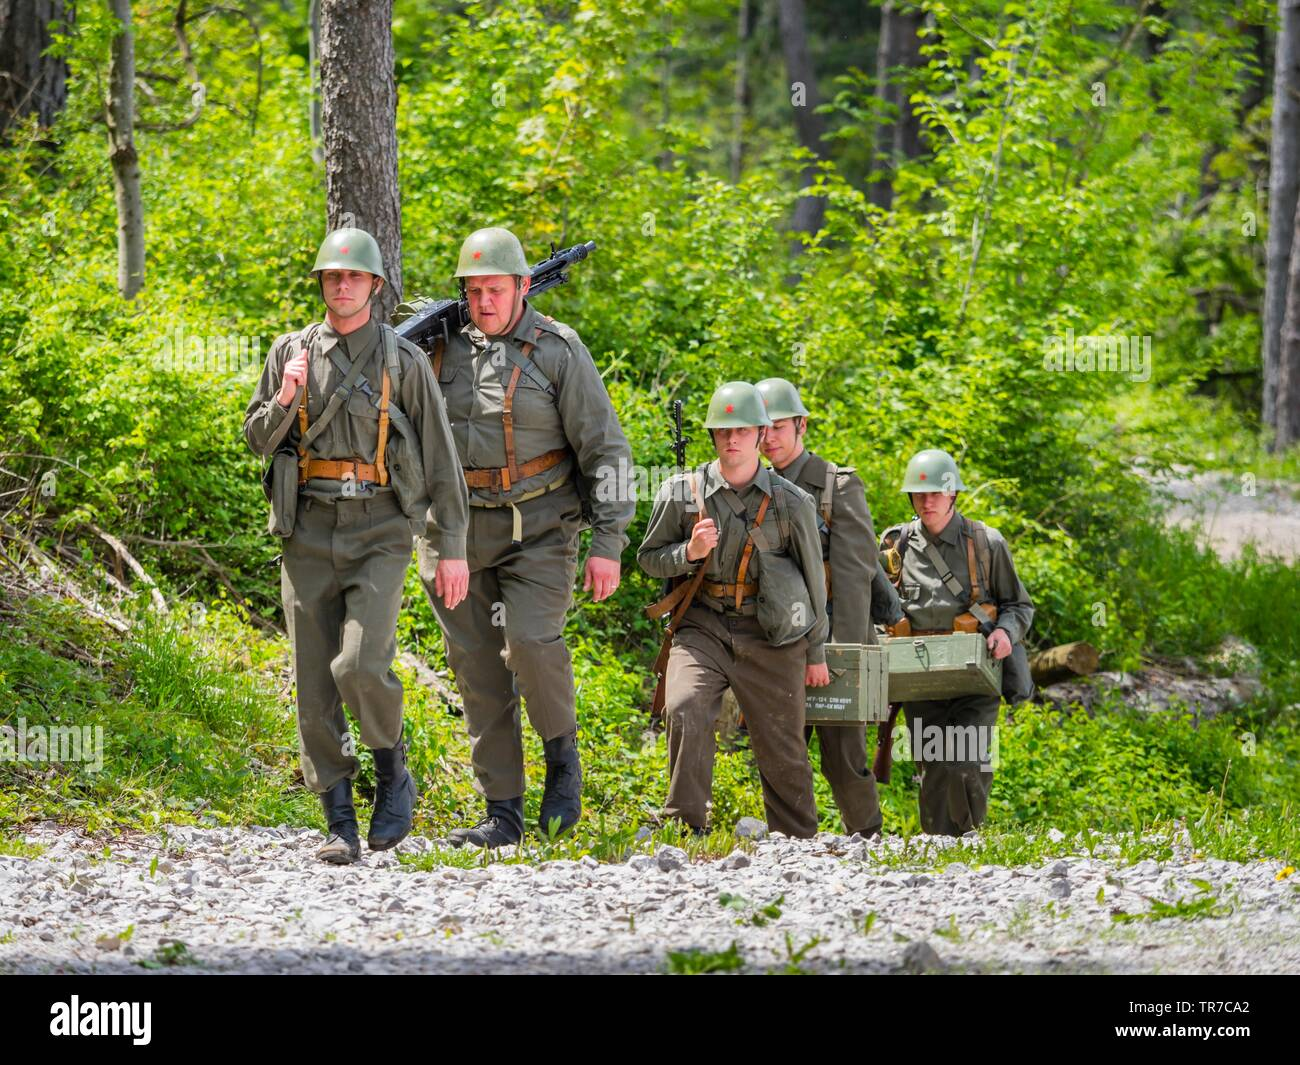 Reviving history actors of Slovenia Pivka museum of military history representing ex JNA army soldiers walking towards camera Stock Photo